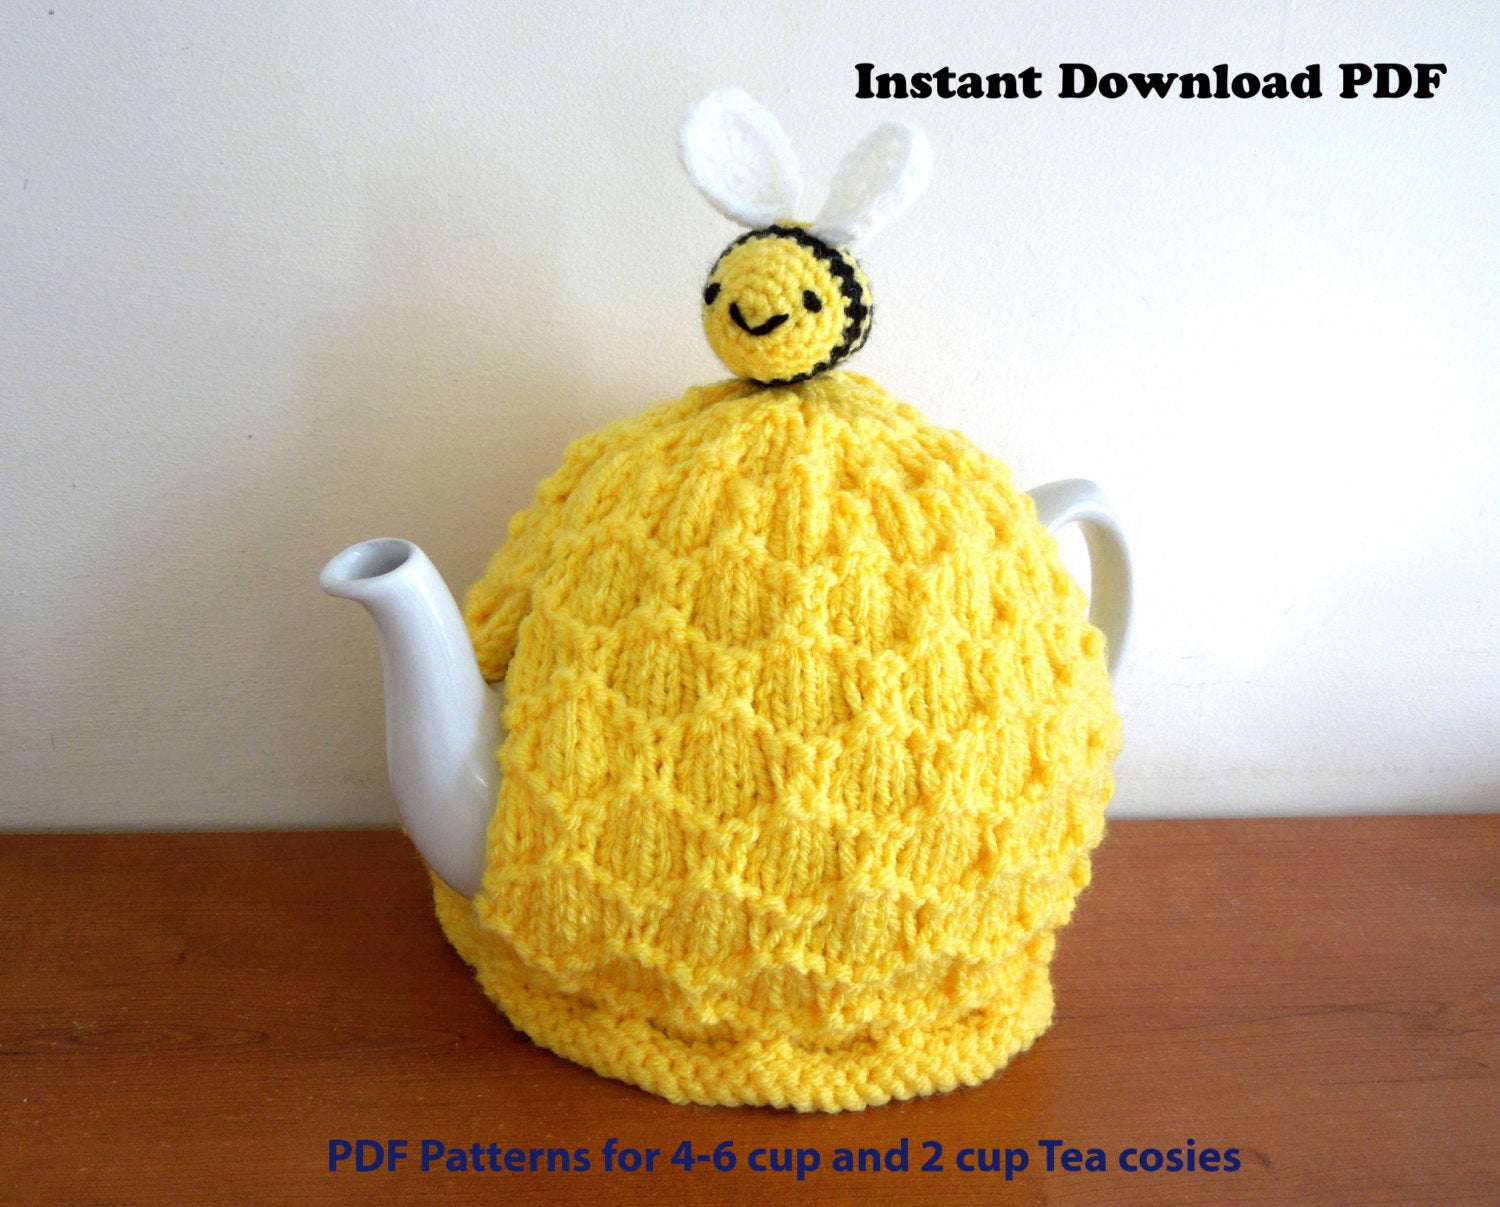 Tea Cosy Patterns To Knit Beehive Tea Cosy Knitting Pattern Only For 4 6 Cup 2 Pt 40 Fl Oz Standard Teapot And Small 2 Cup 450ml Teapot And Bee Pattern